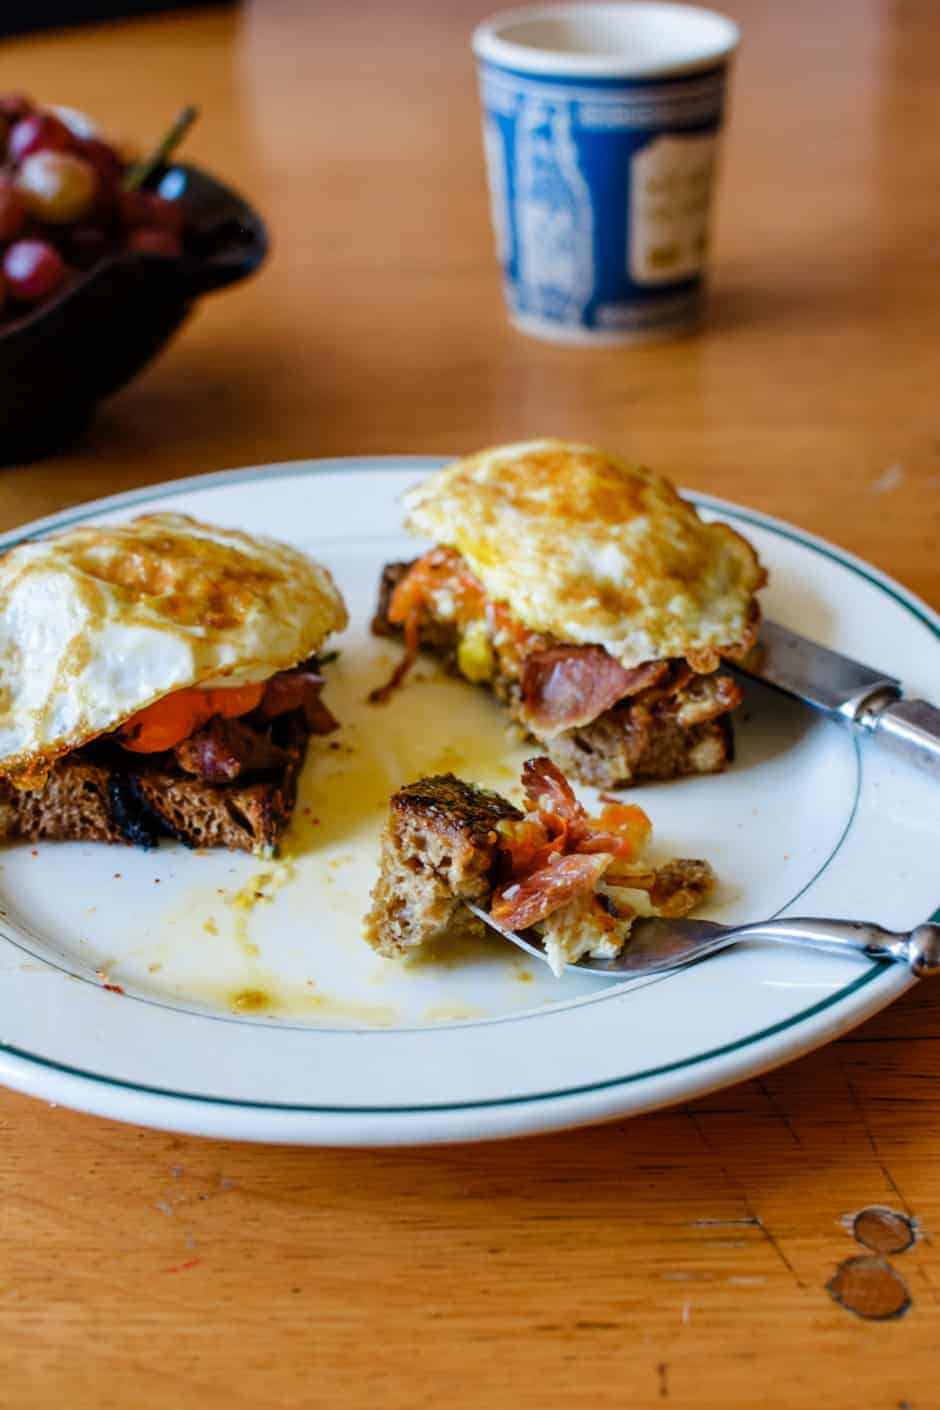 Such a delicious breakfast recipe: Slices of rustic bread rubbed with garlic and topped with ham, roasted tomatoes and mushrooms, and a fried egg.